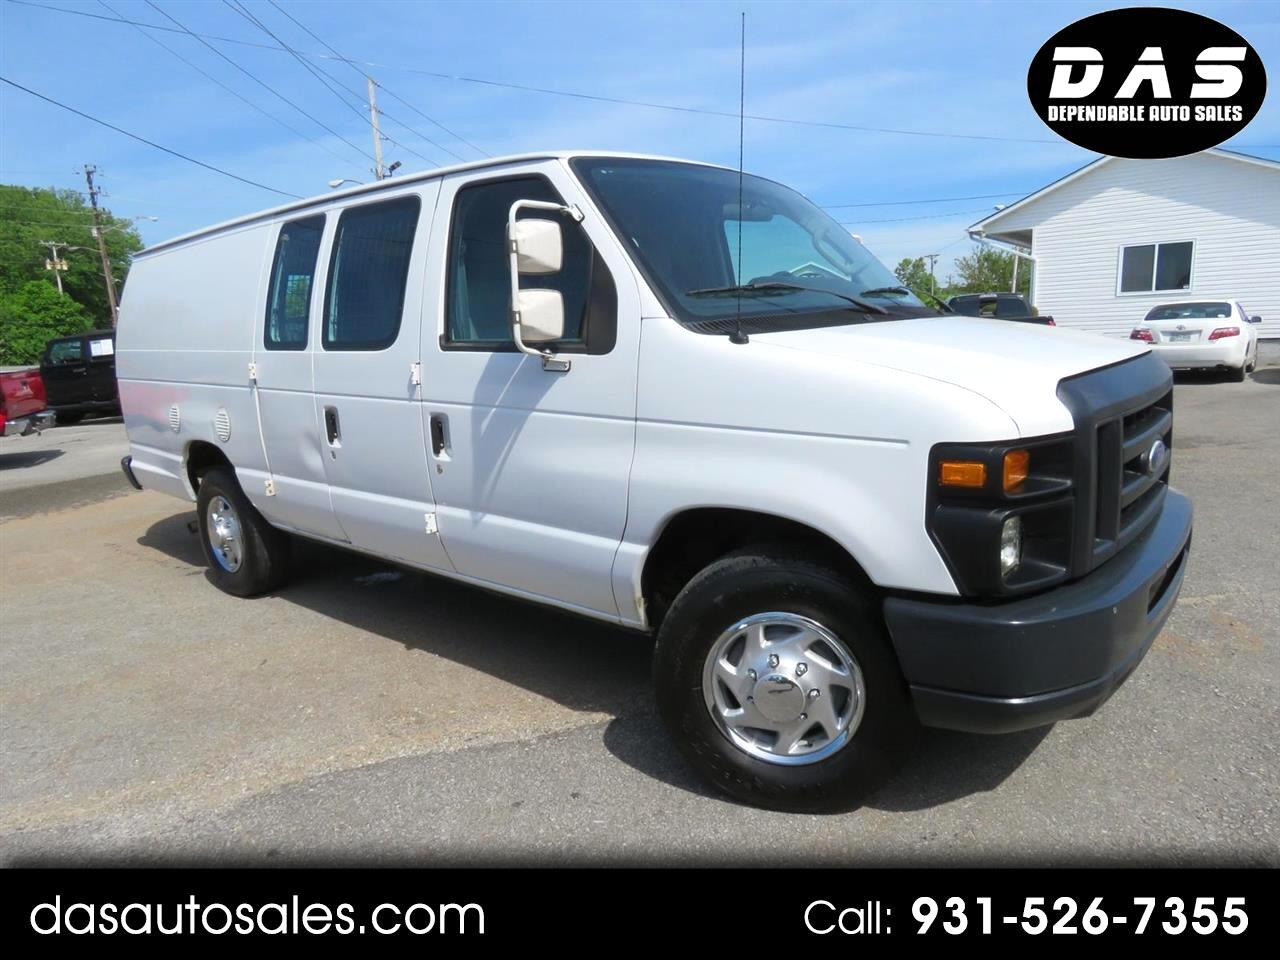 2014 Ford Econoline Cargo Van E-350 Super Duty Ext Commercial